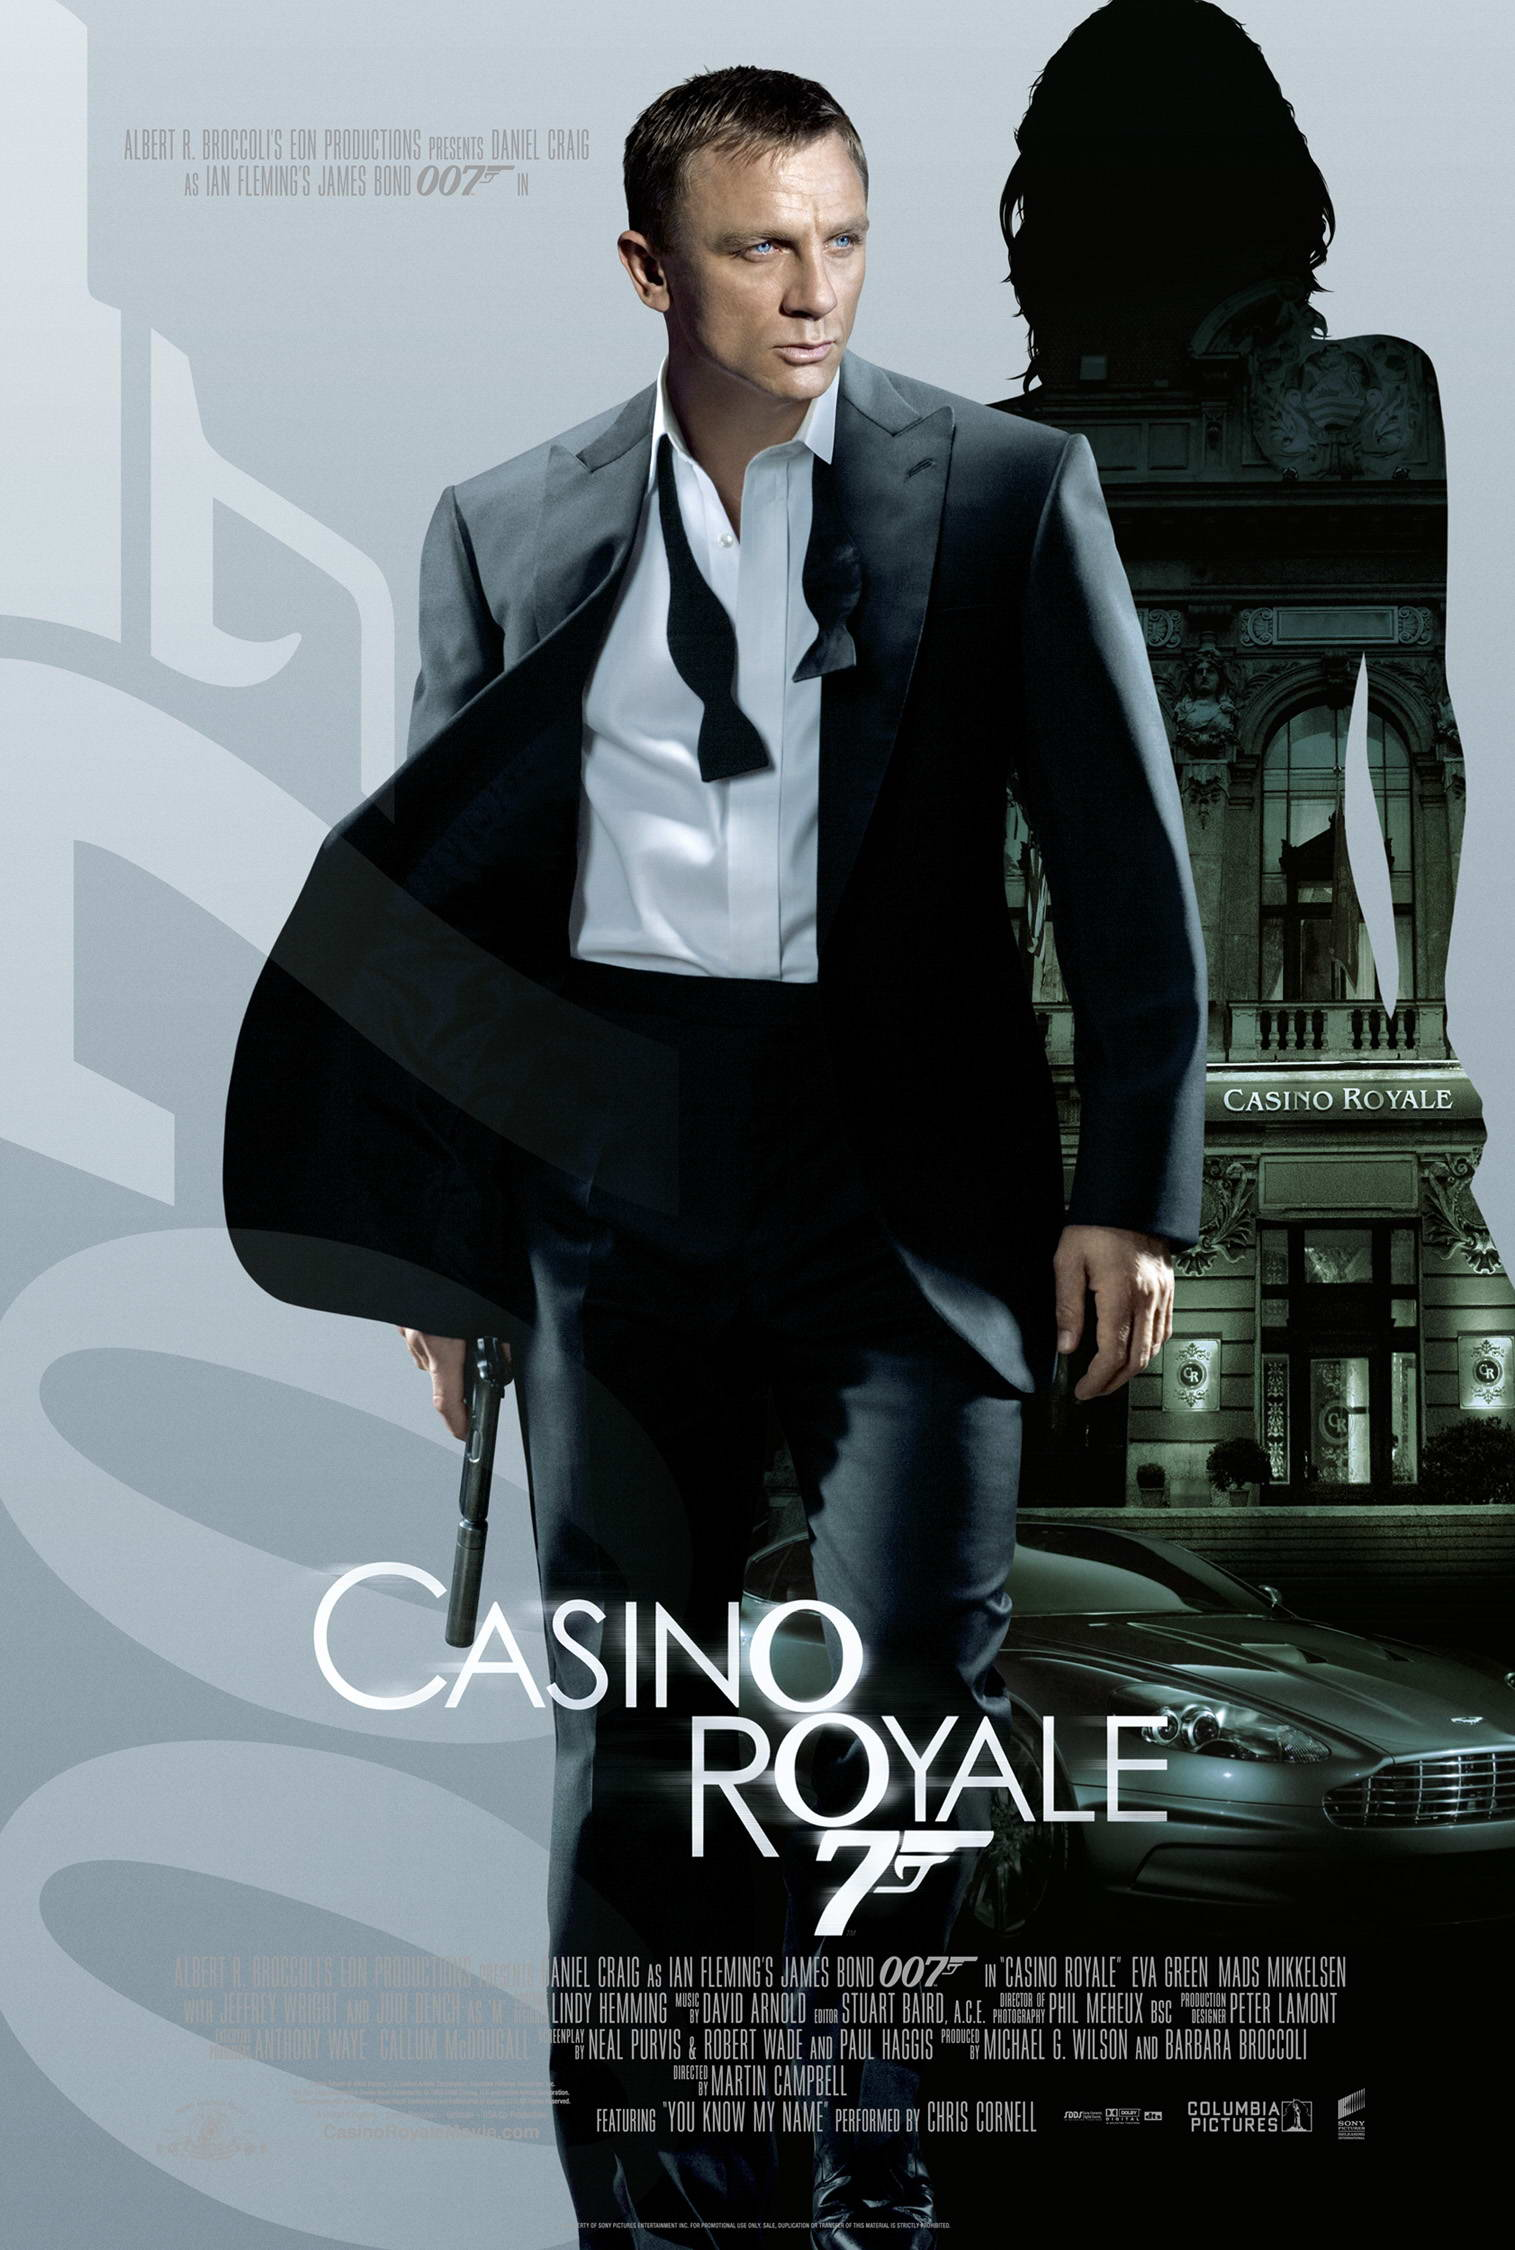 Casino royale movies map of vegas hotel casino